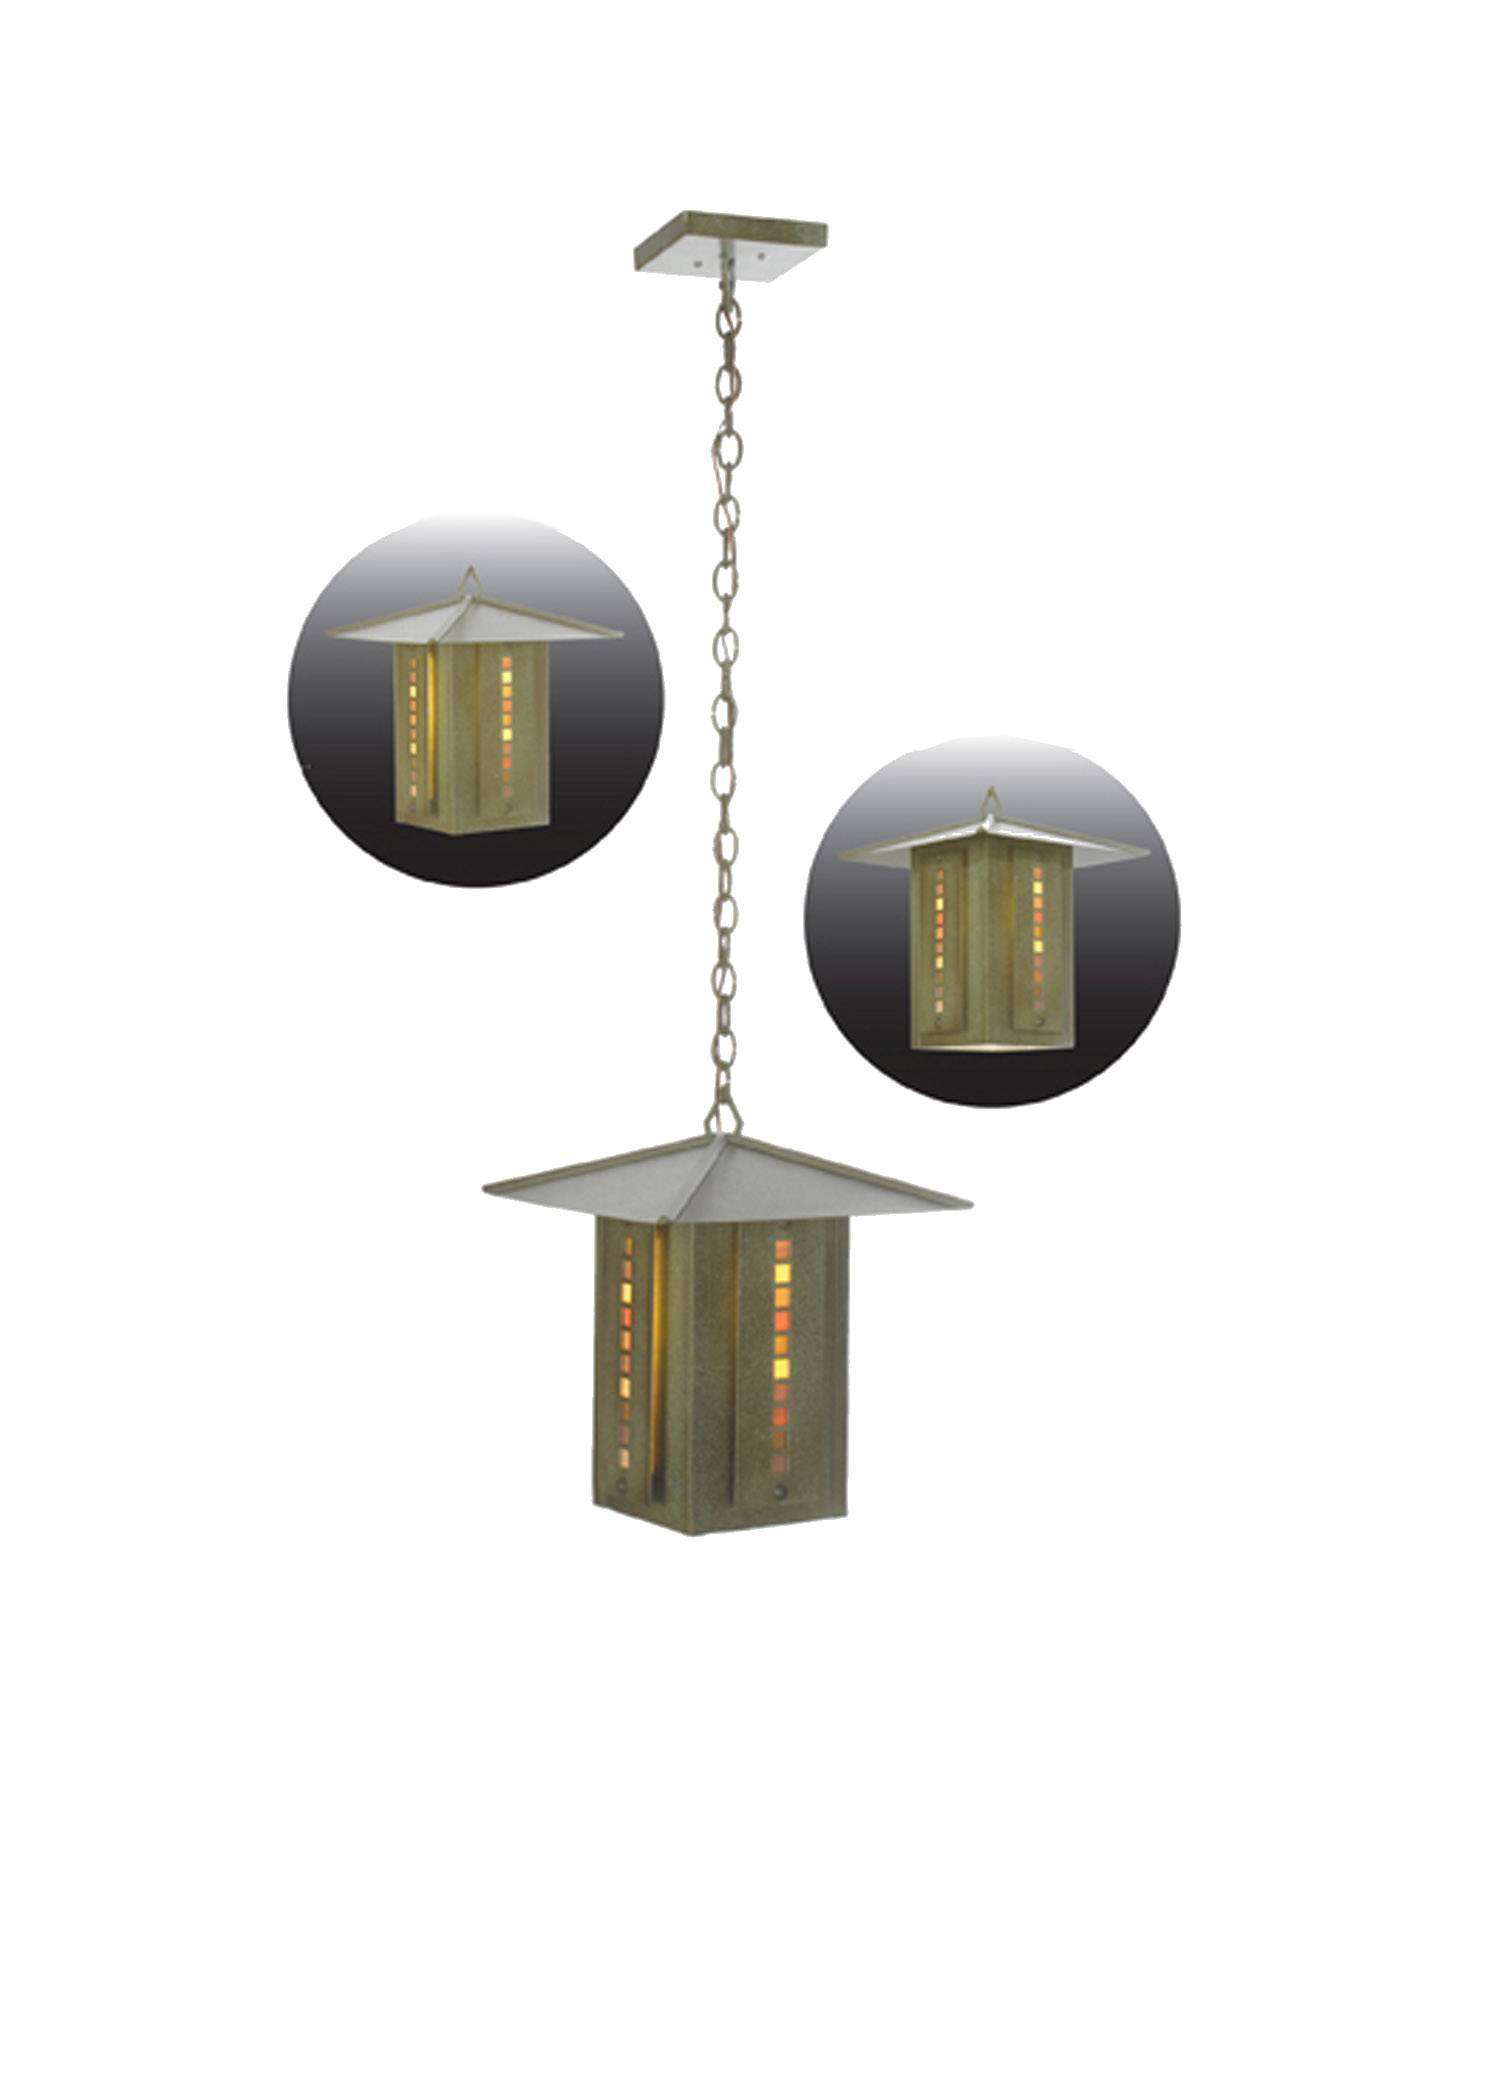 Meyda Tiffany 99412 Moss Creek Stepping Stone Lantern Pendant in Tarnished Copper finish with Glass Tile